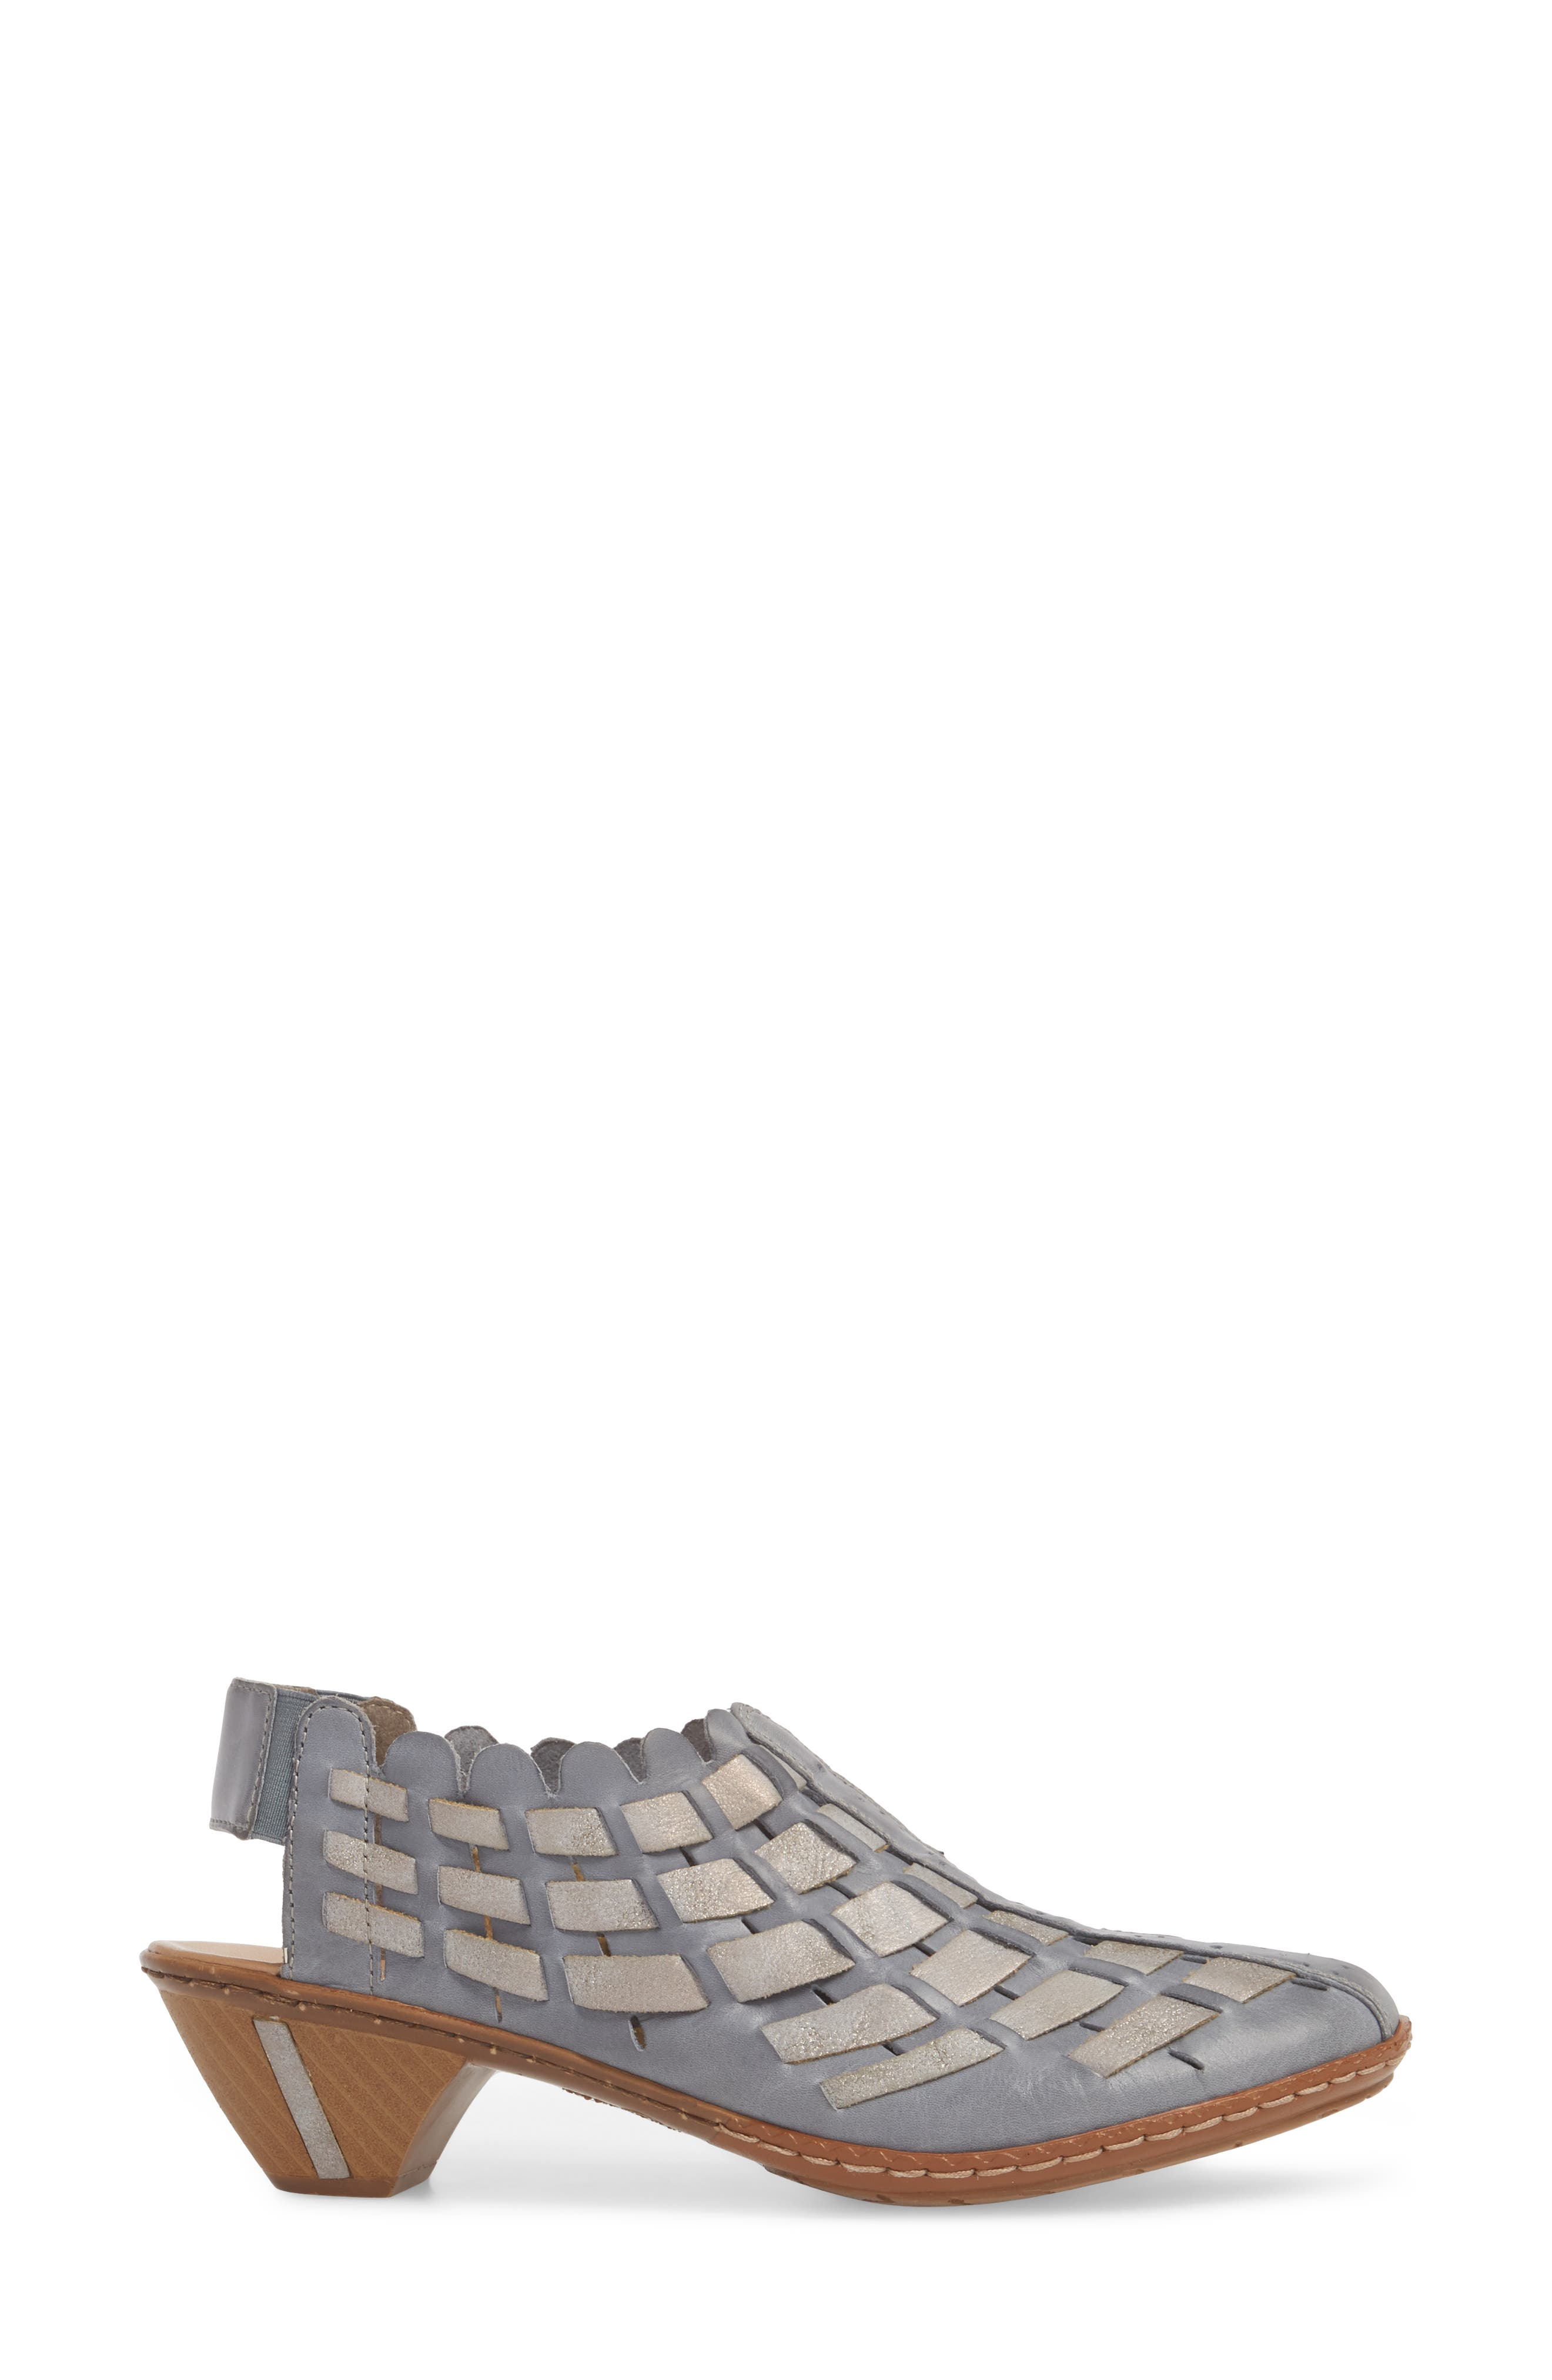 'Sina' Woven Bootie,                             Alternate thumbnail 3, color,                             Azur Grey Leather